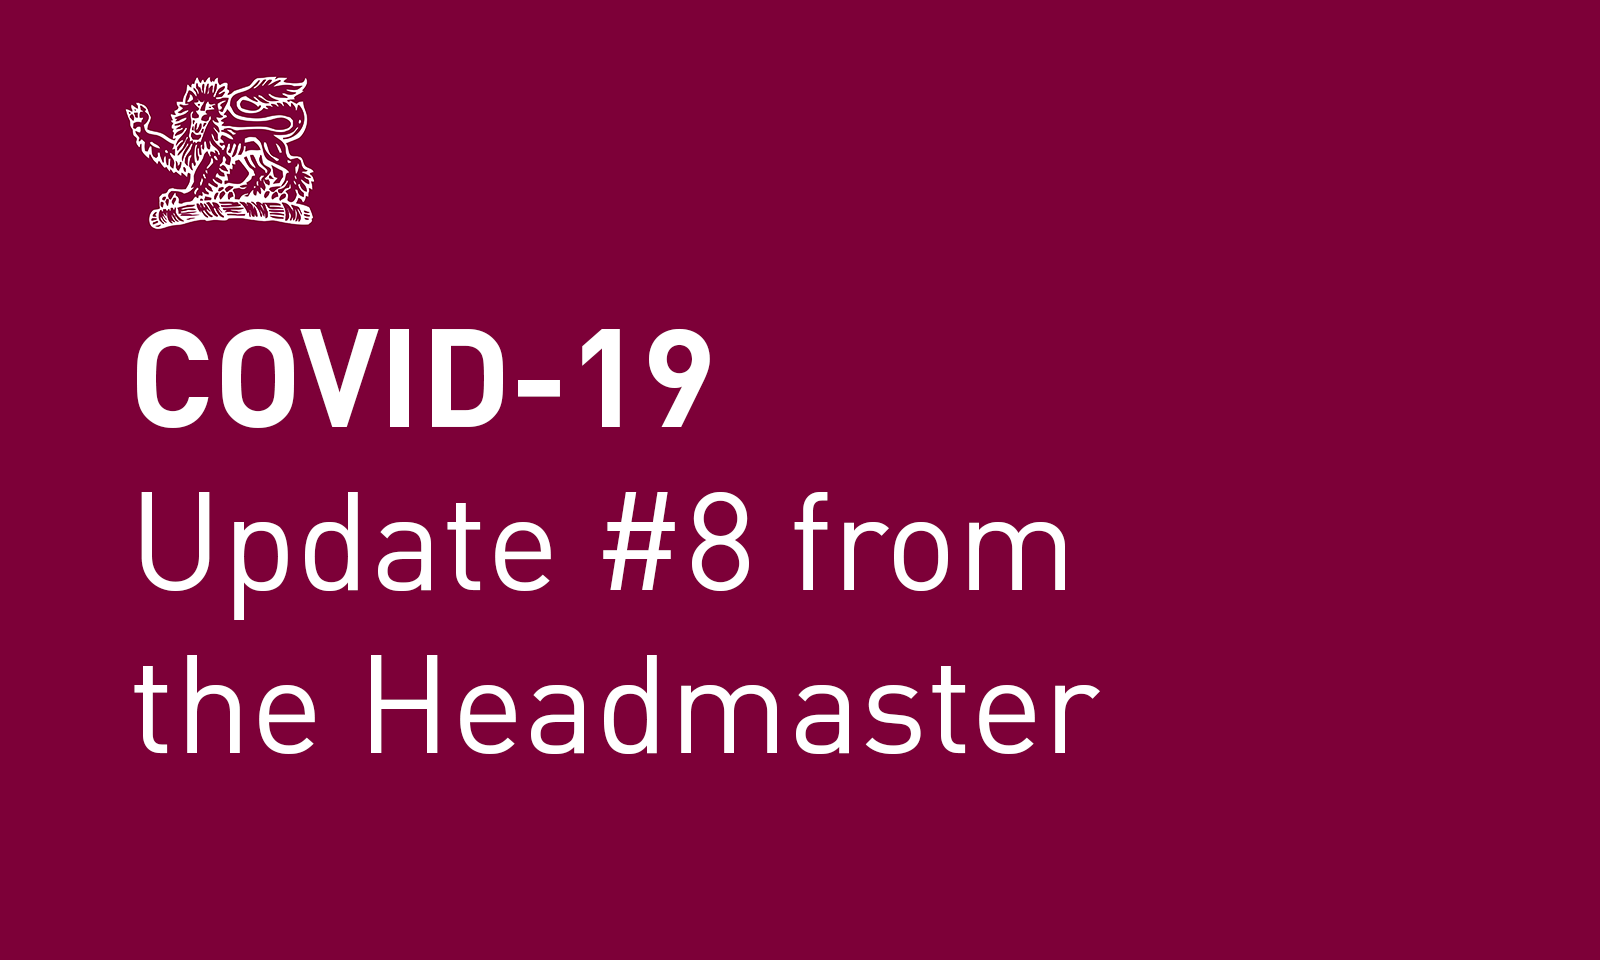 Coronavirus (COVID-19) update #8 from the Headmaster